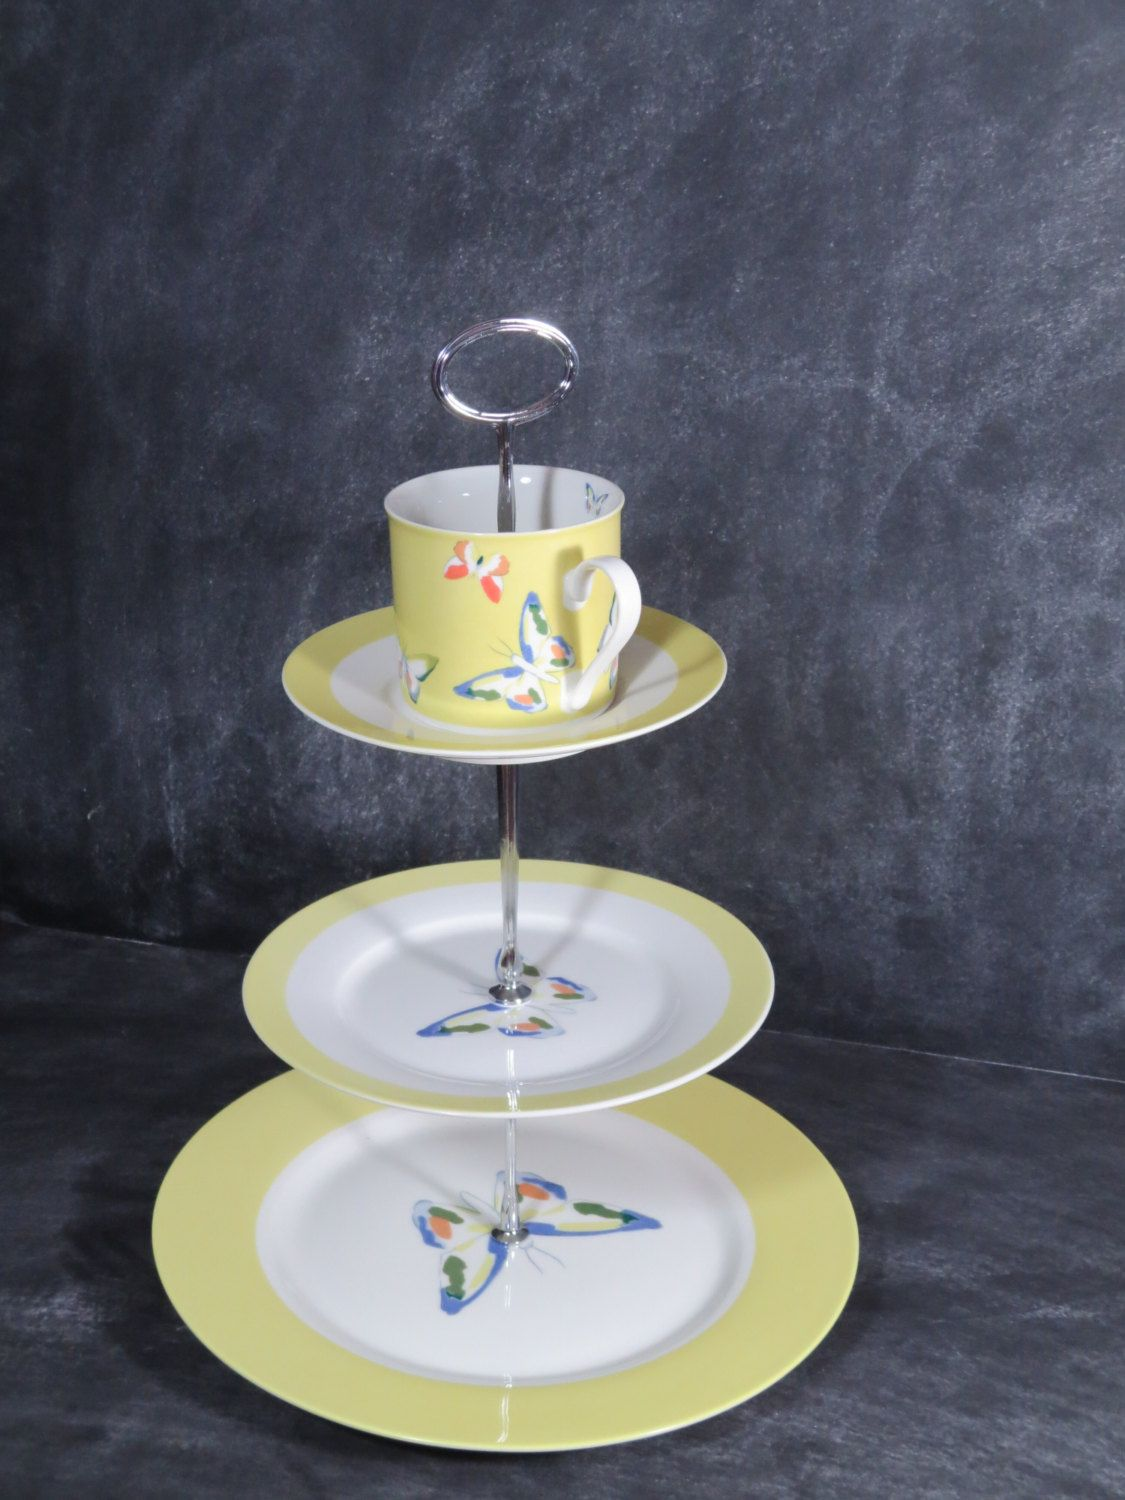 New to DancingDishAndDecor on Etsy Teacup Tea Stand 3 Tier Cake Stand Butterfly Cake Plate & New to DancingDishAndDecor on Etsy: Teacup Tea Stand 3 Tier Cake ...